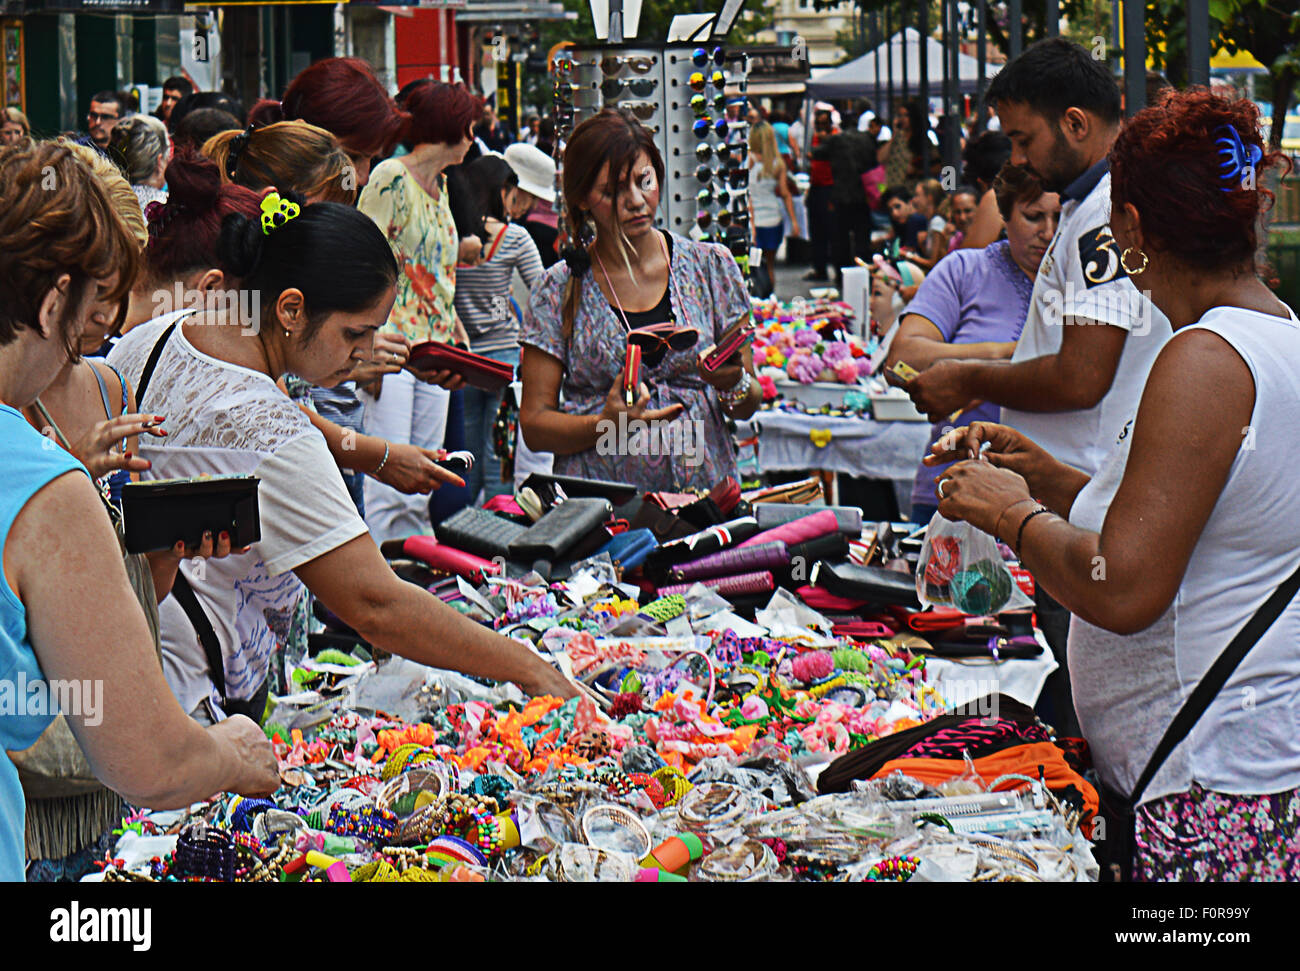 Market stall shopping Bucharest, Romania - Stock Image